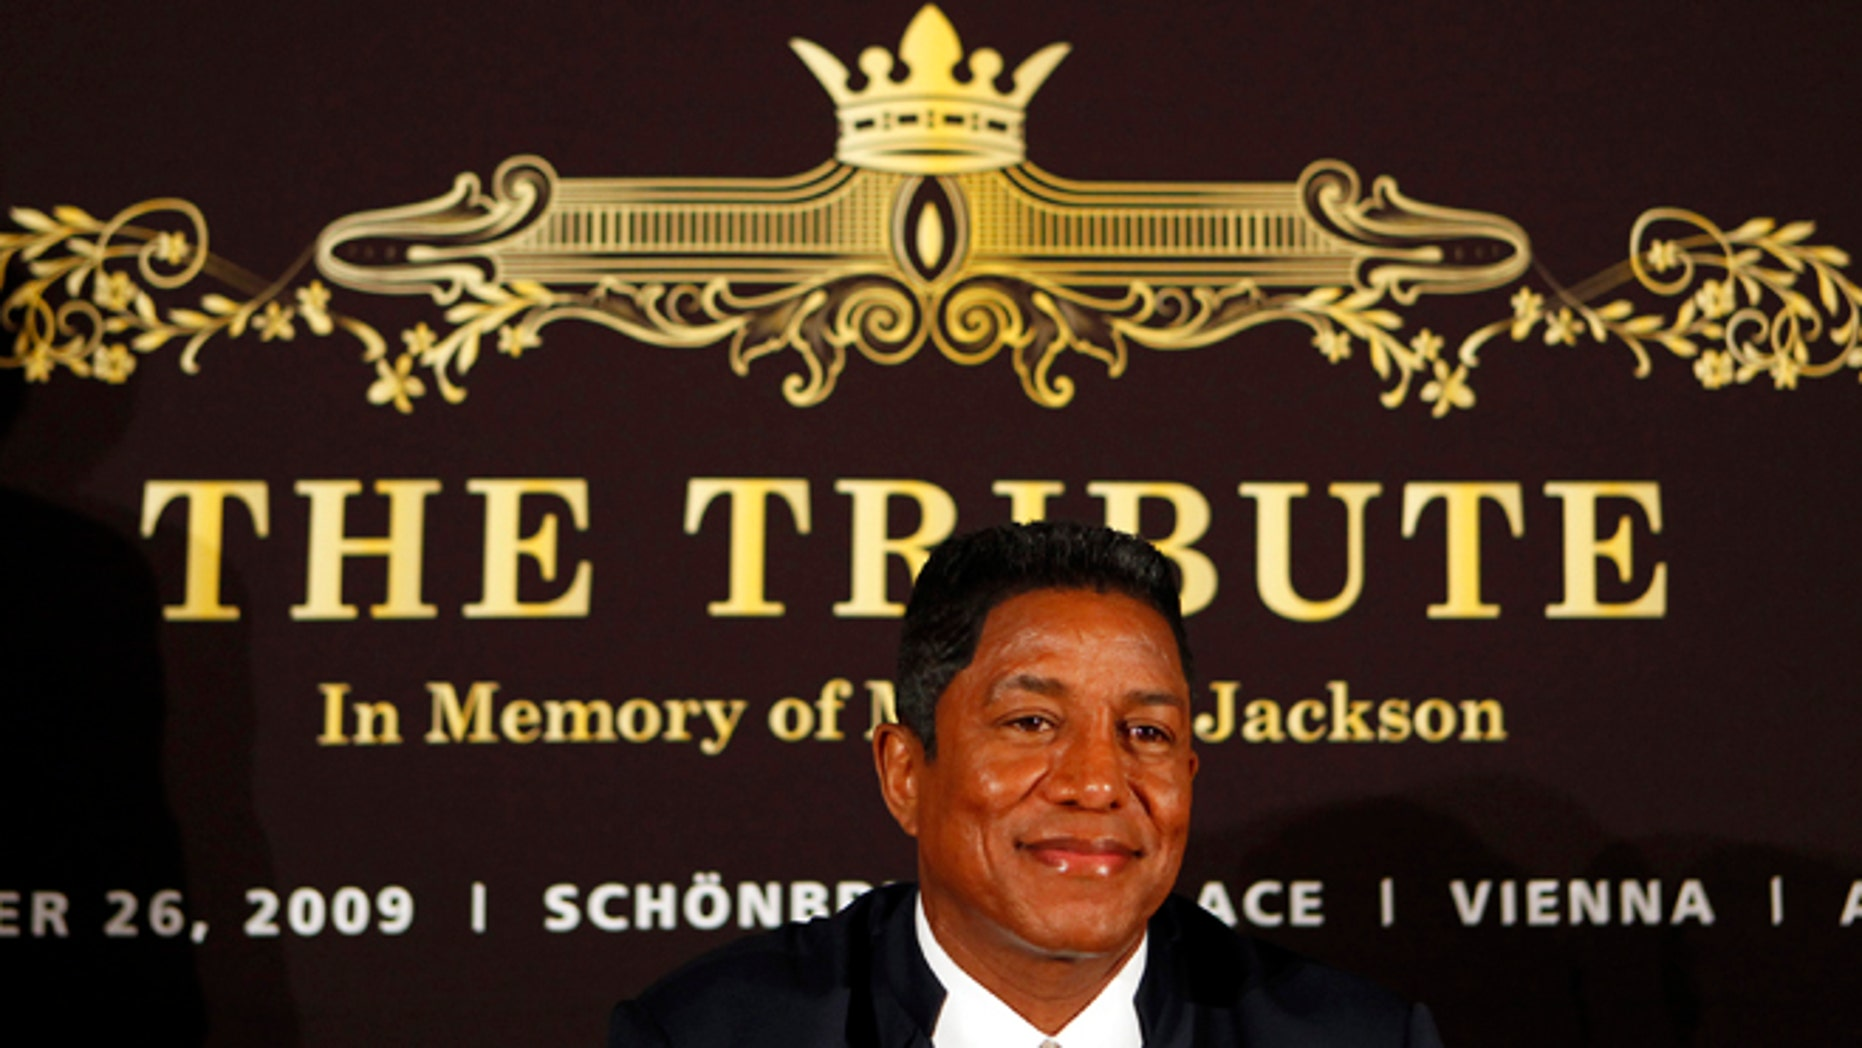 """Sept. 10, 2009: In this file photo, Jermaine Jackson, bother of late U.S. pop star Michael Jackson, smiles prior to a press conference on """"The Tribute - In Memory of Michael Jackson"""" in Berlin."""